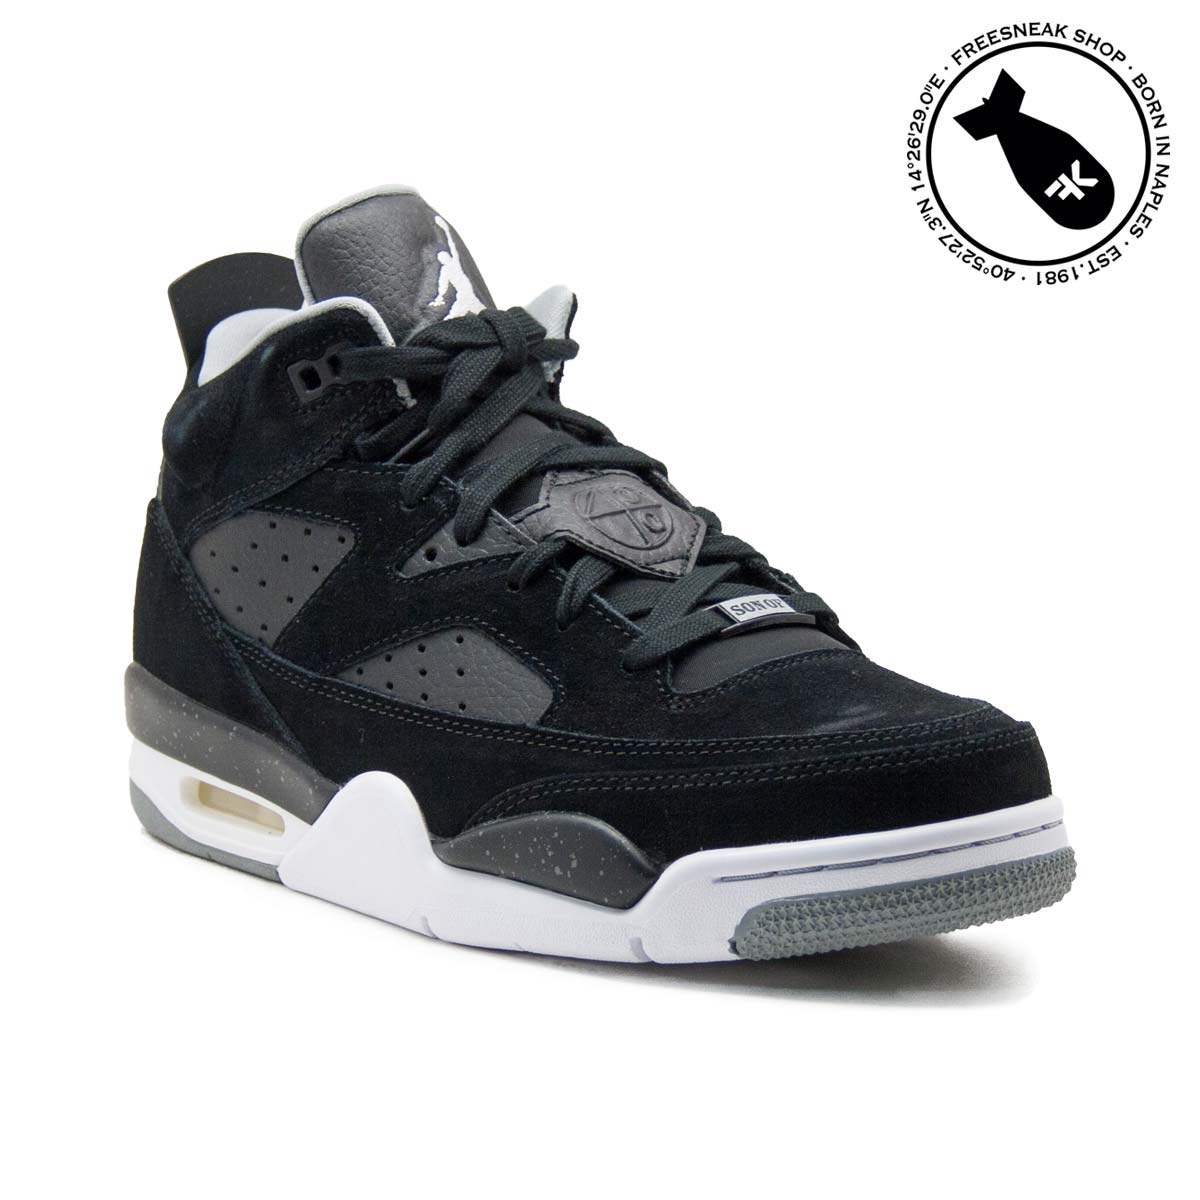 online retailer bd191 70123 Sneakers Nike Air Jordan Son Of Mars Low Suede Black 580603-001